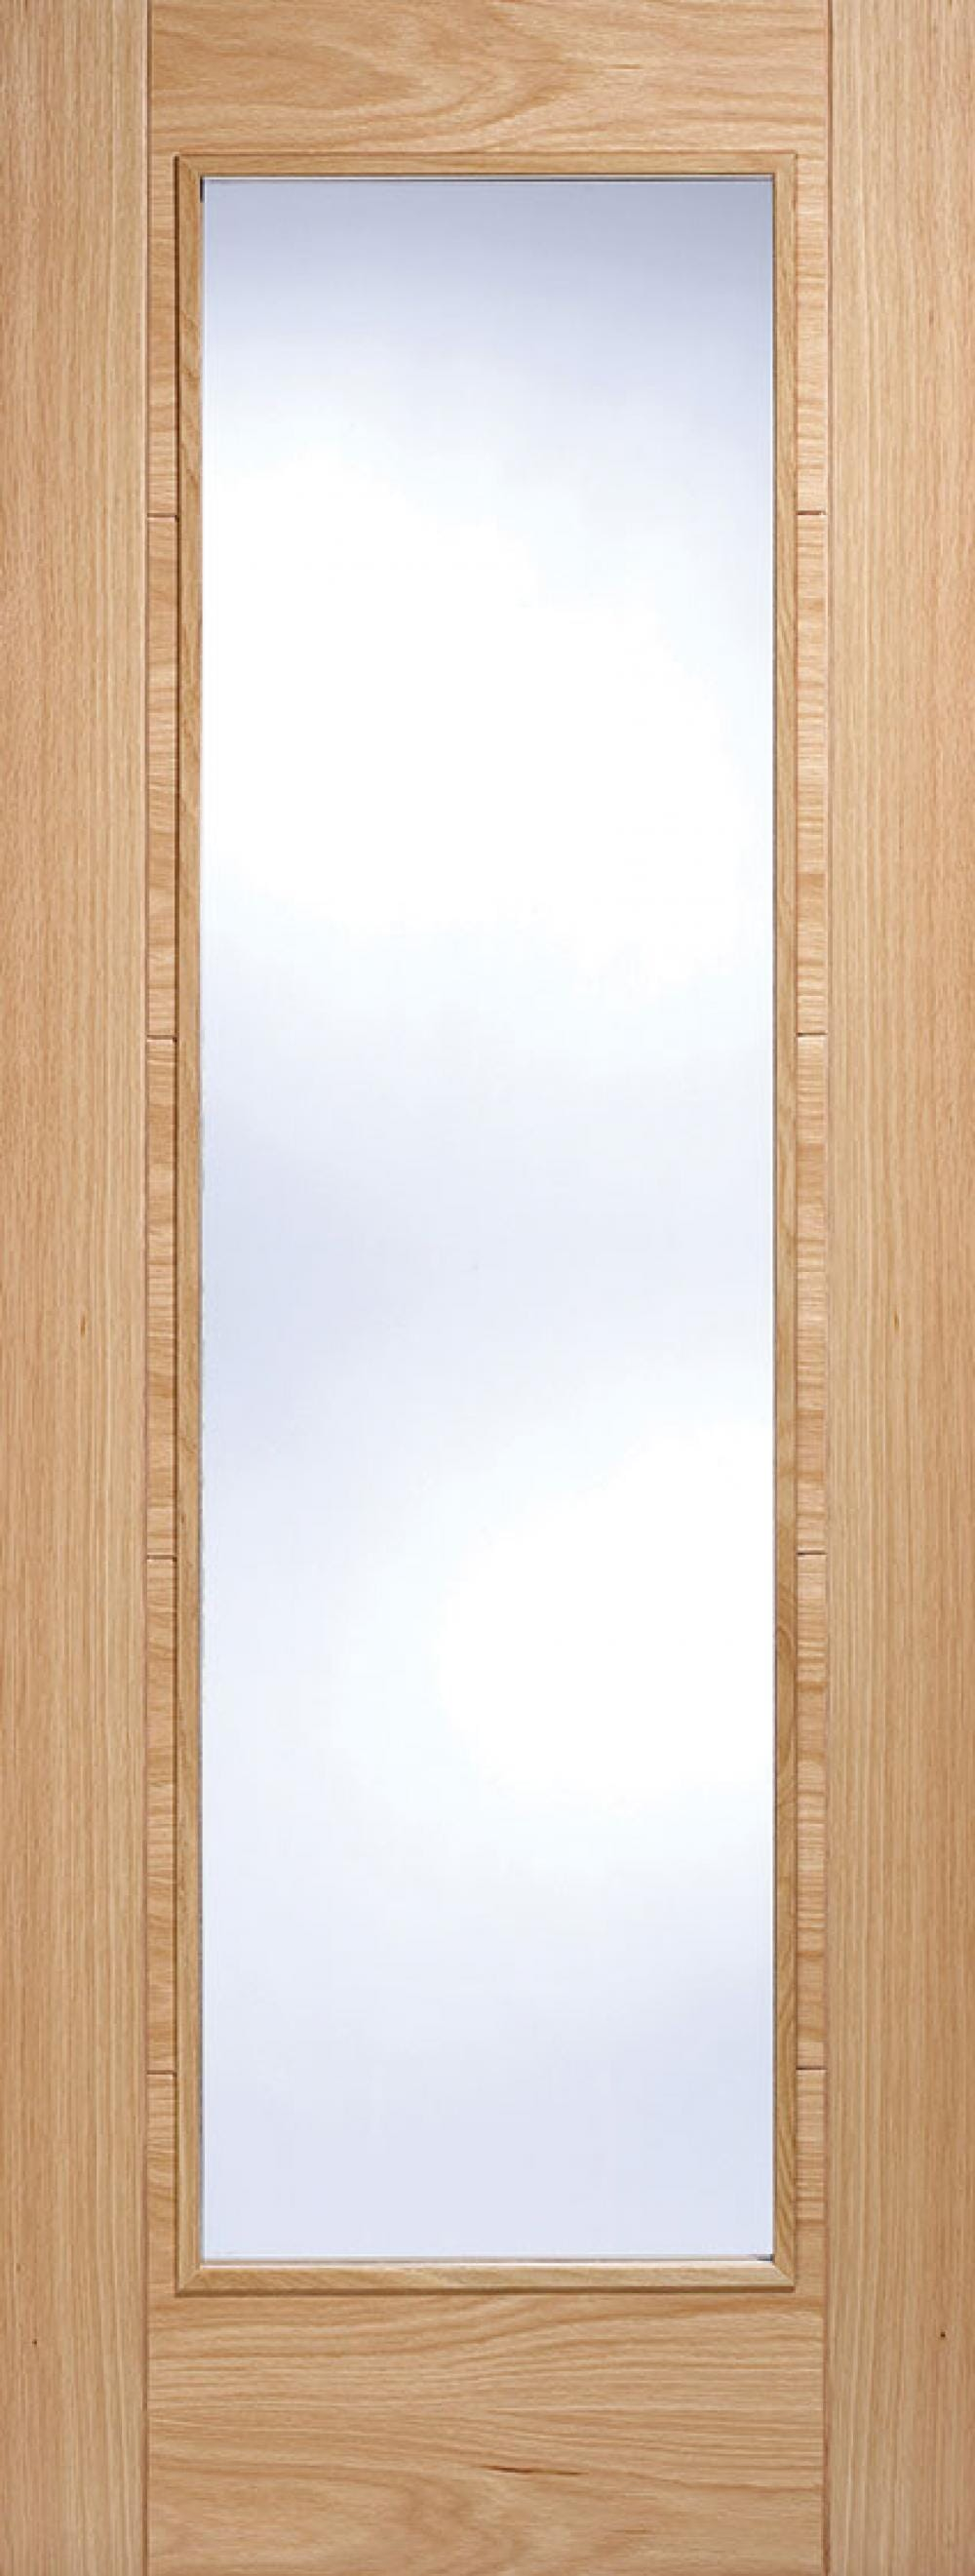 Iseo Oak Pattern 10 Frosted Glazed - Prefinished Image